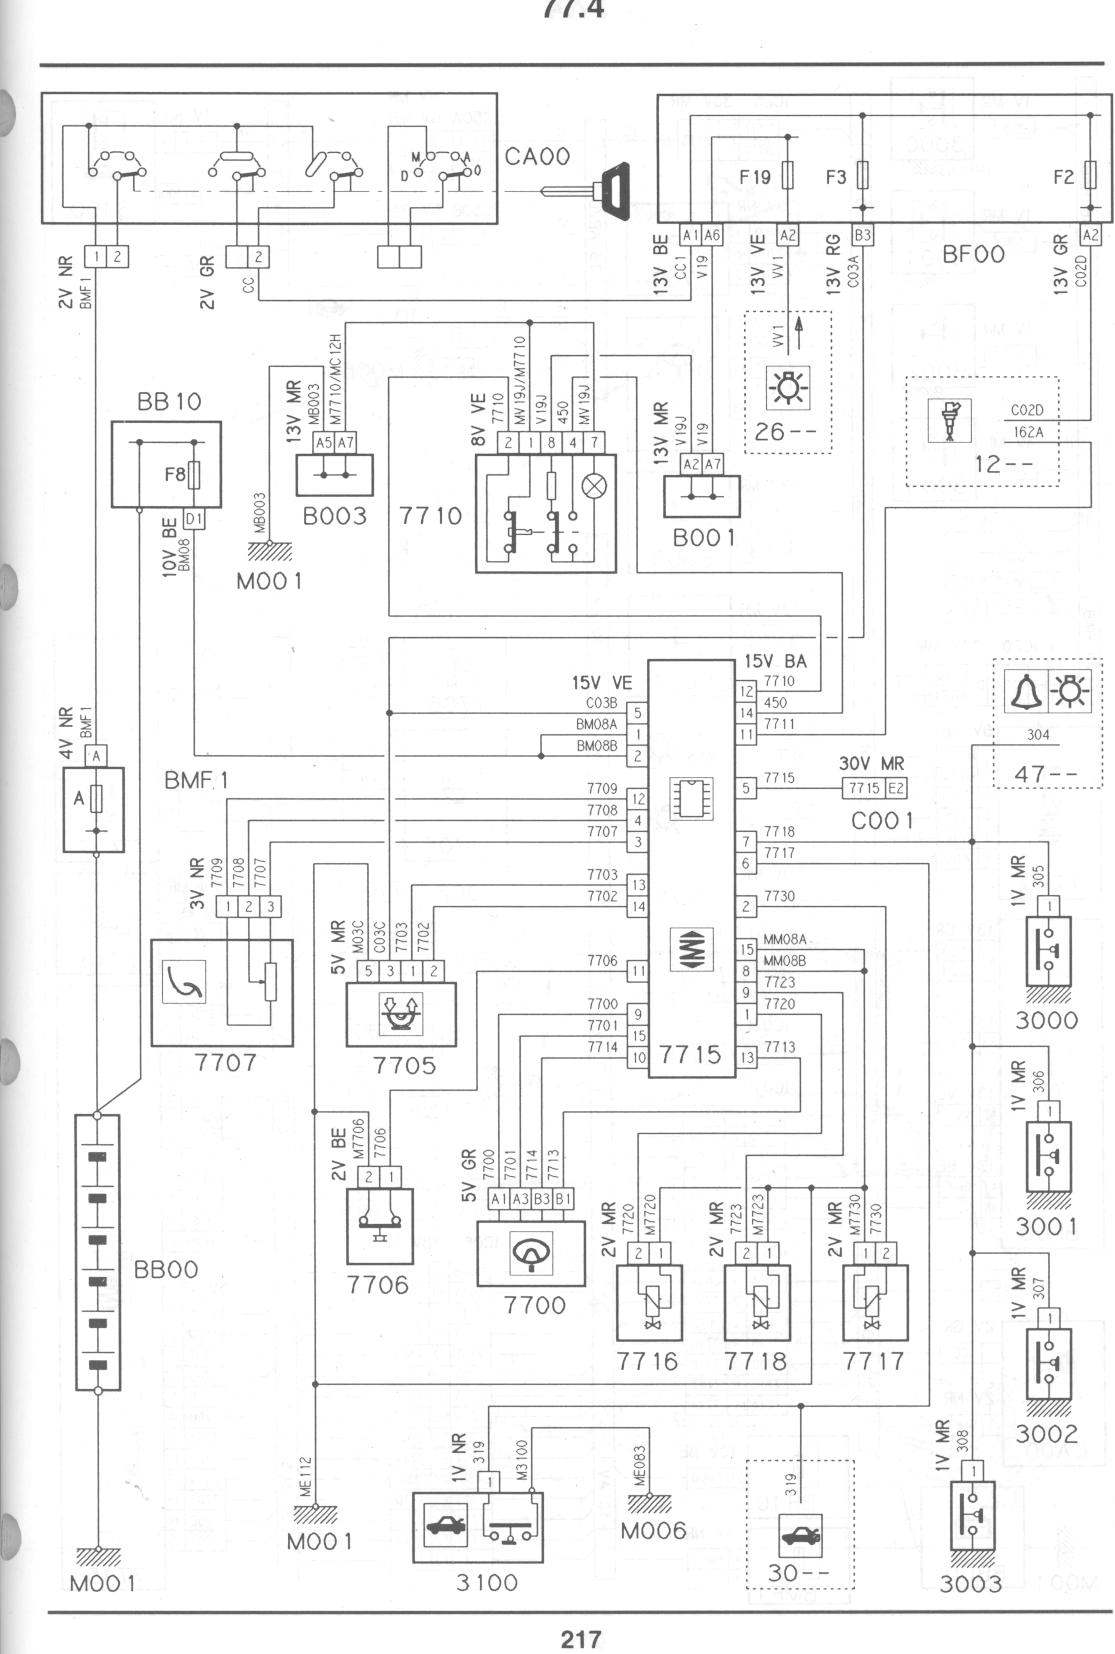 2009 citroen relay fuse box diagram 2009 image citroen xantia wiring diagram citroen wiring diagrams on 2009 citroen relay fuse box diagram